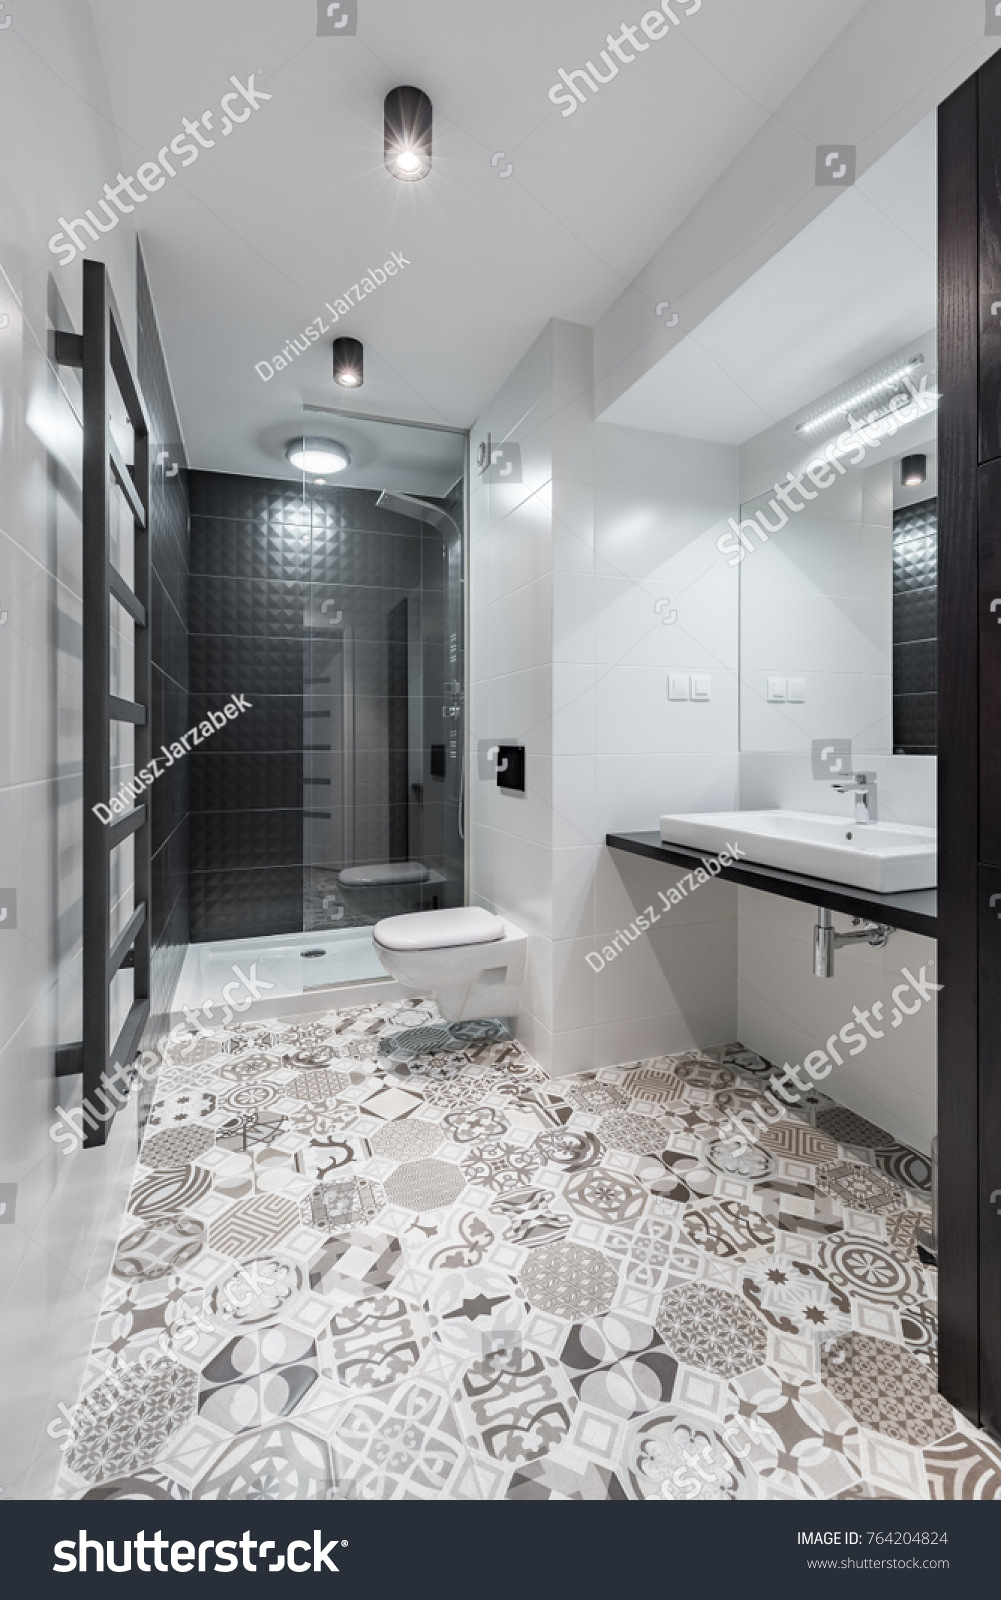 Black White Bathroom Shower Beautiful Pattern Stock Photo & Image ...